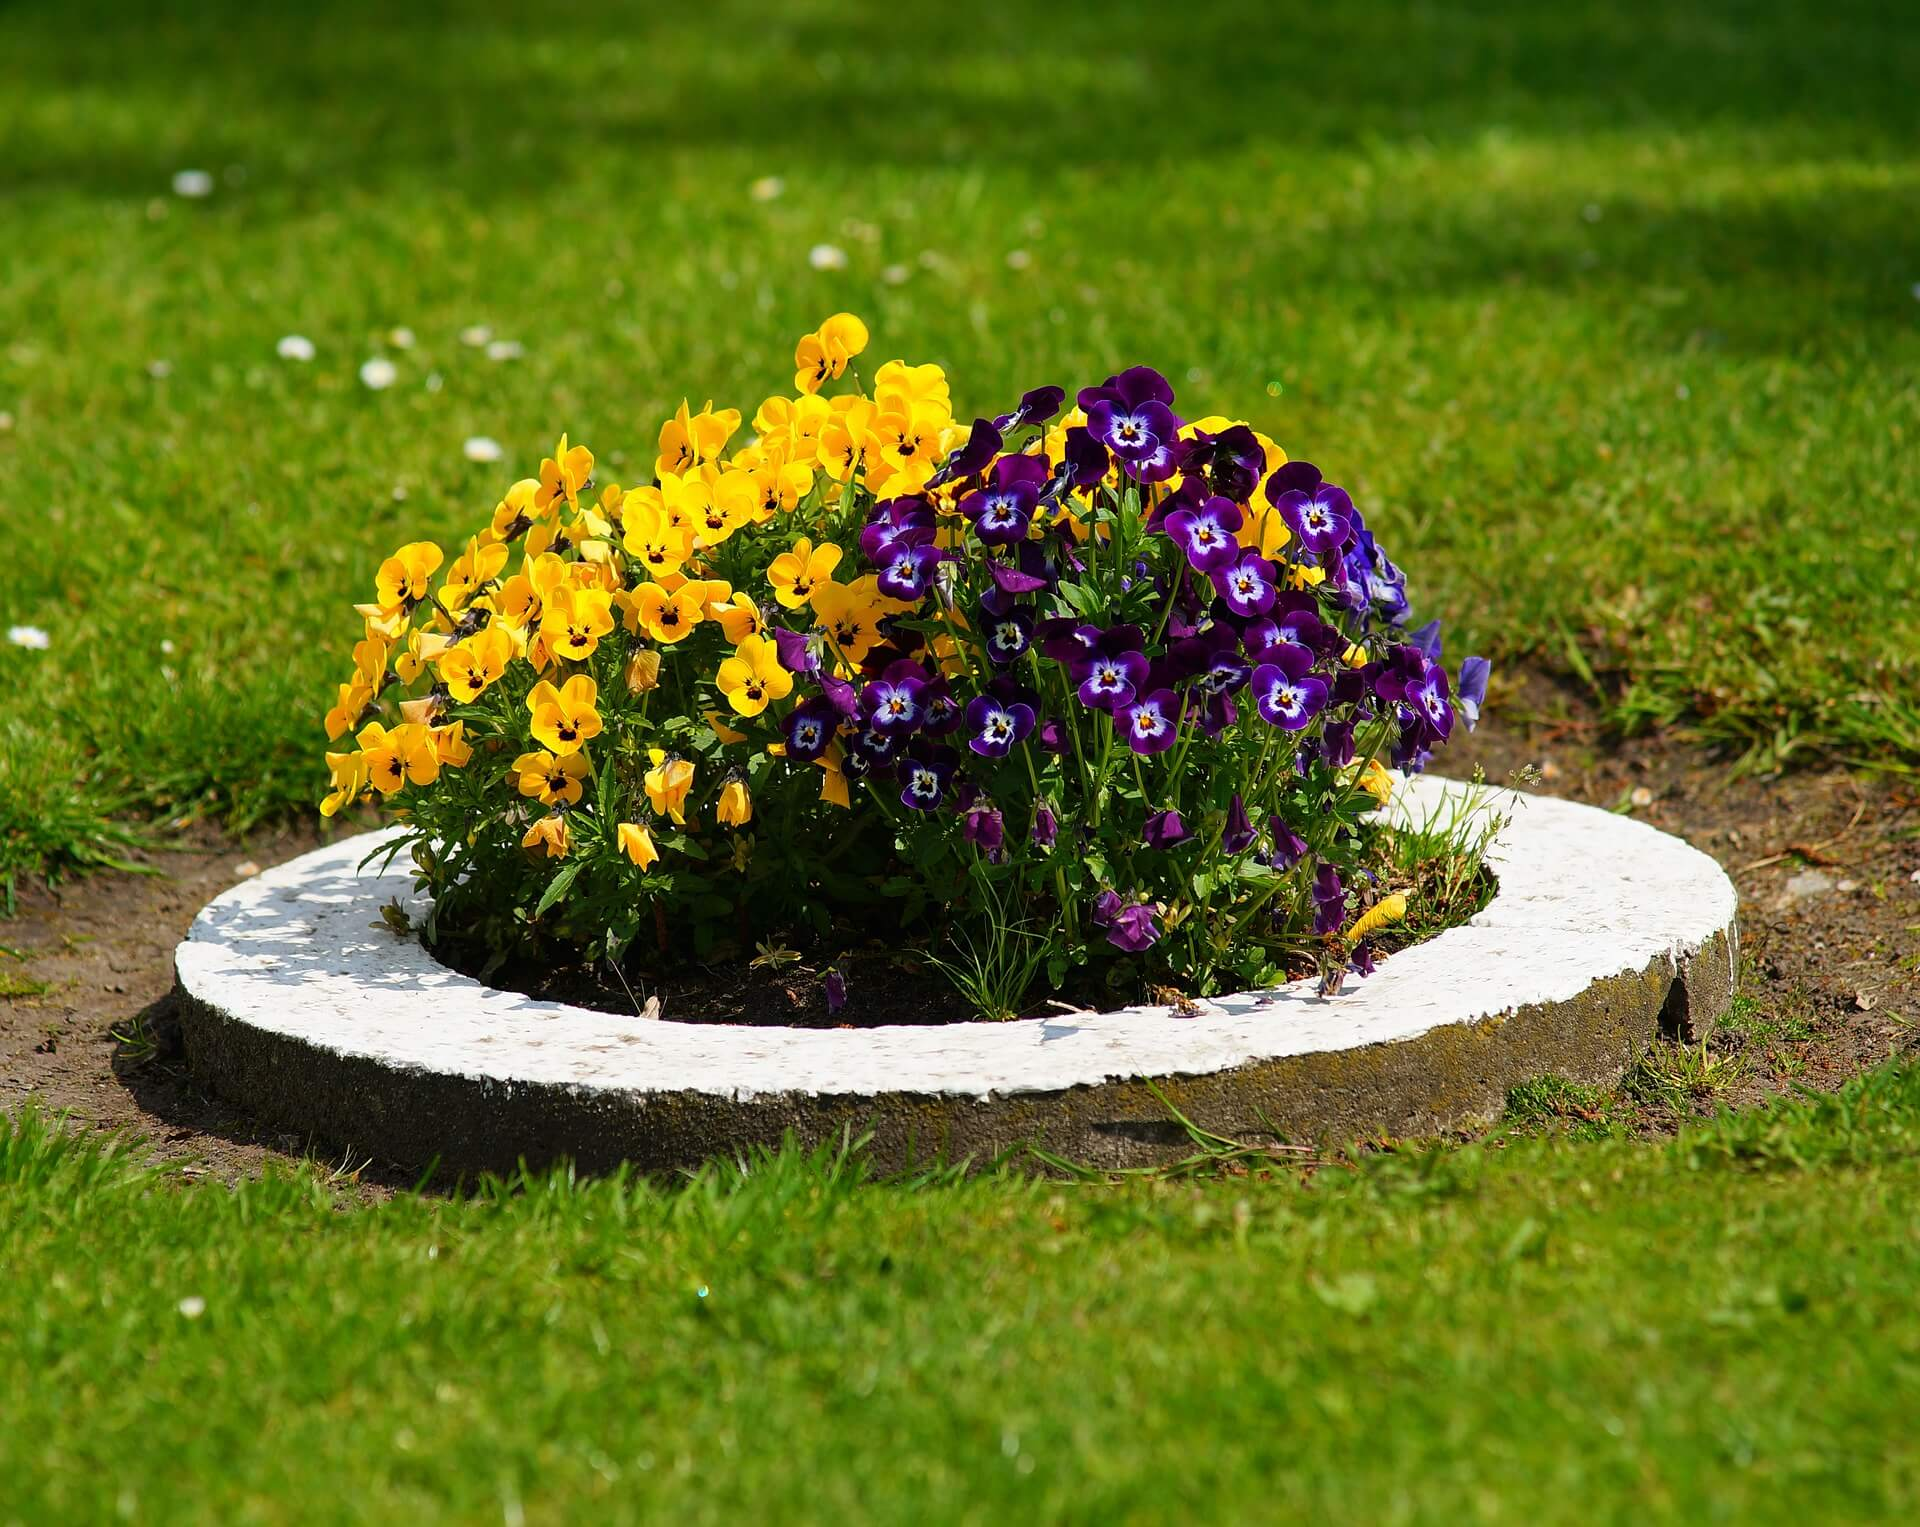 Make a Statement with a Bold, Colorful Flower Bed